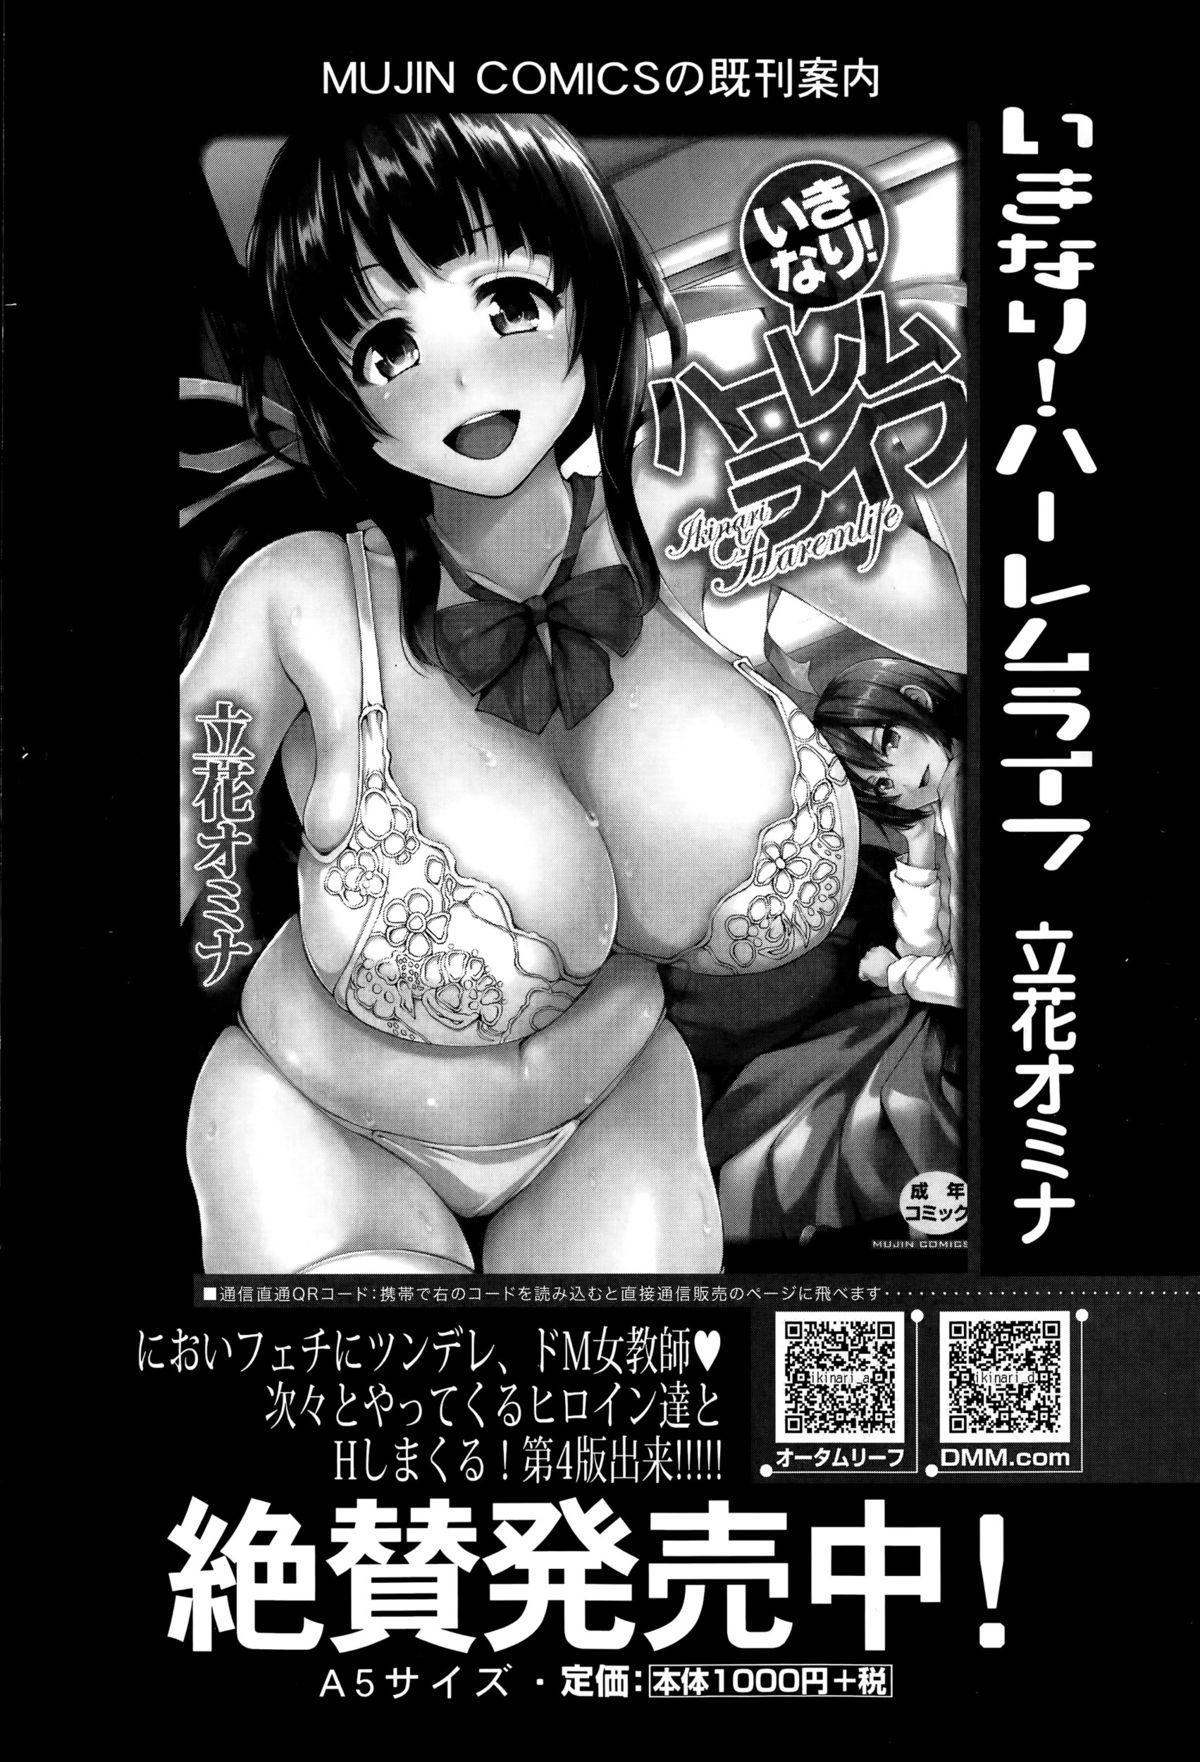 BUSTER COMIC 2015-07 27